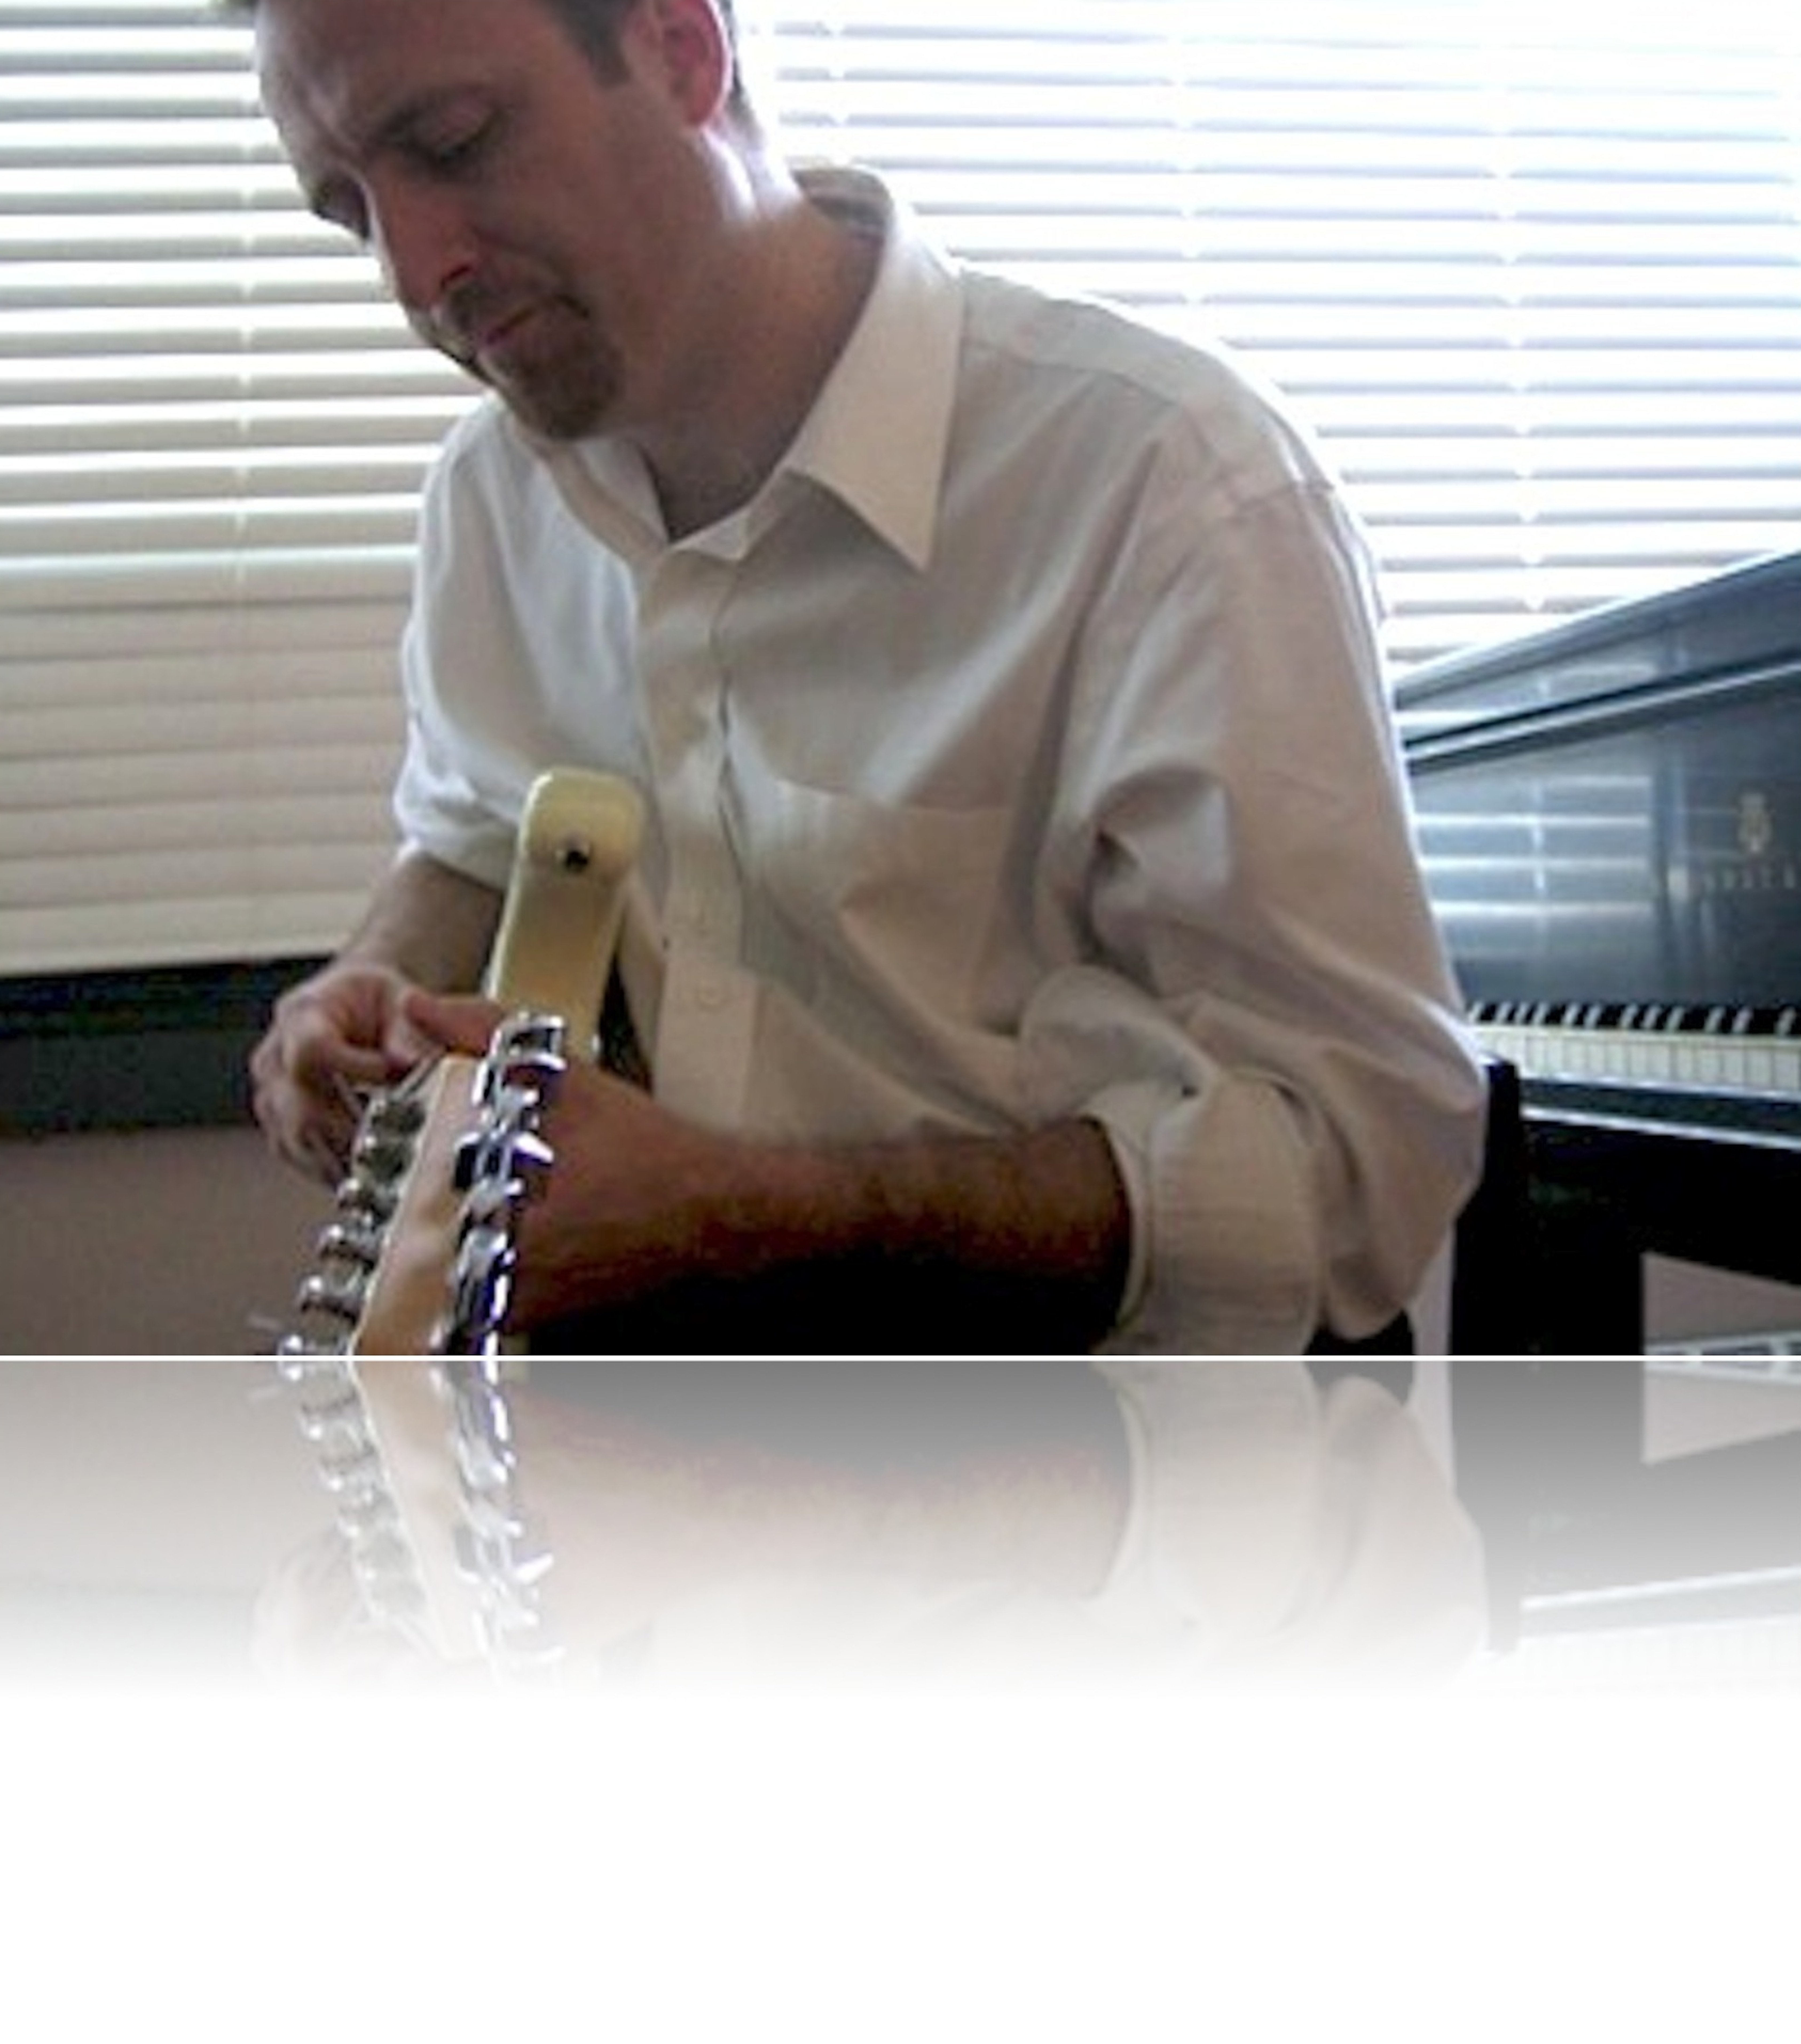 Jim+playing+guitar+at+piano_reflection